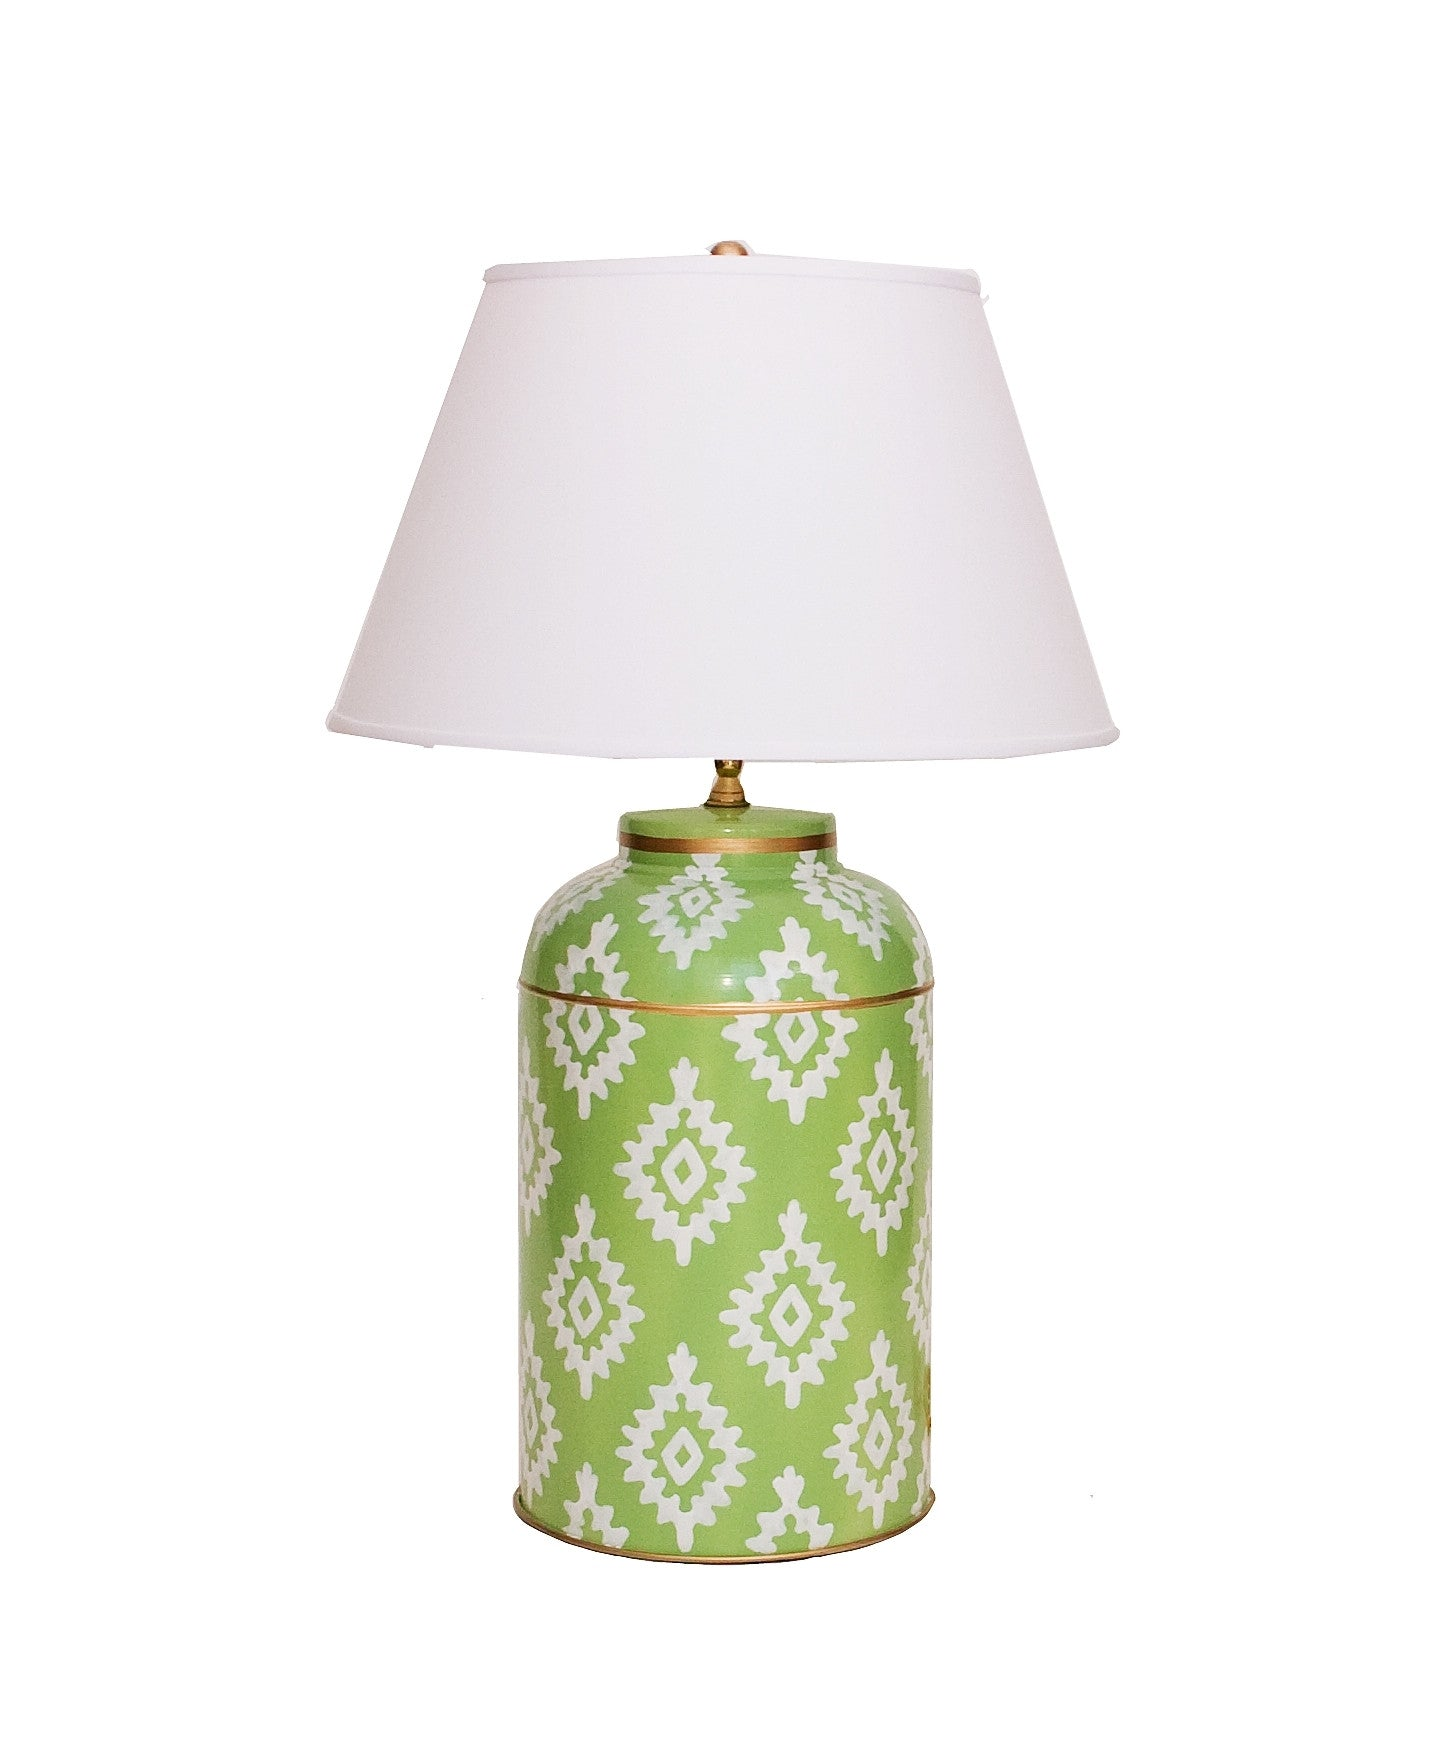 Green Block Print Tea caddy Lamp